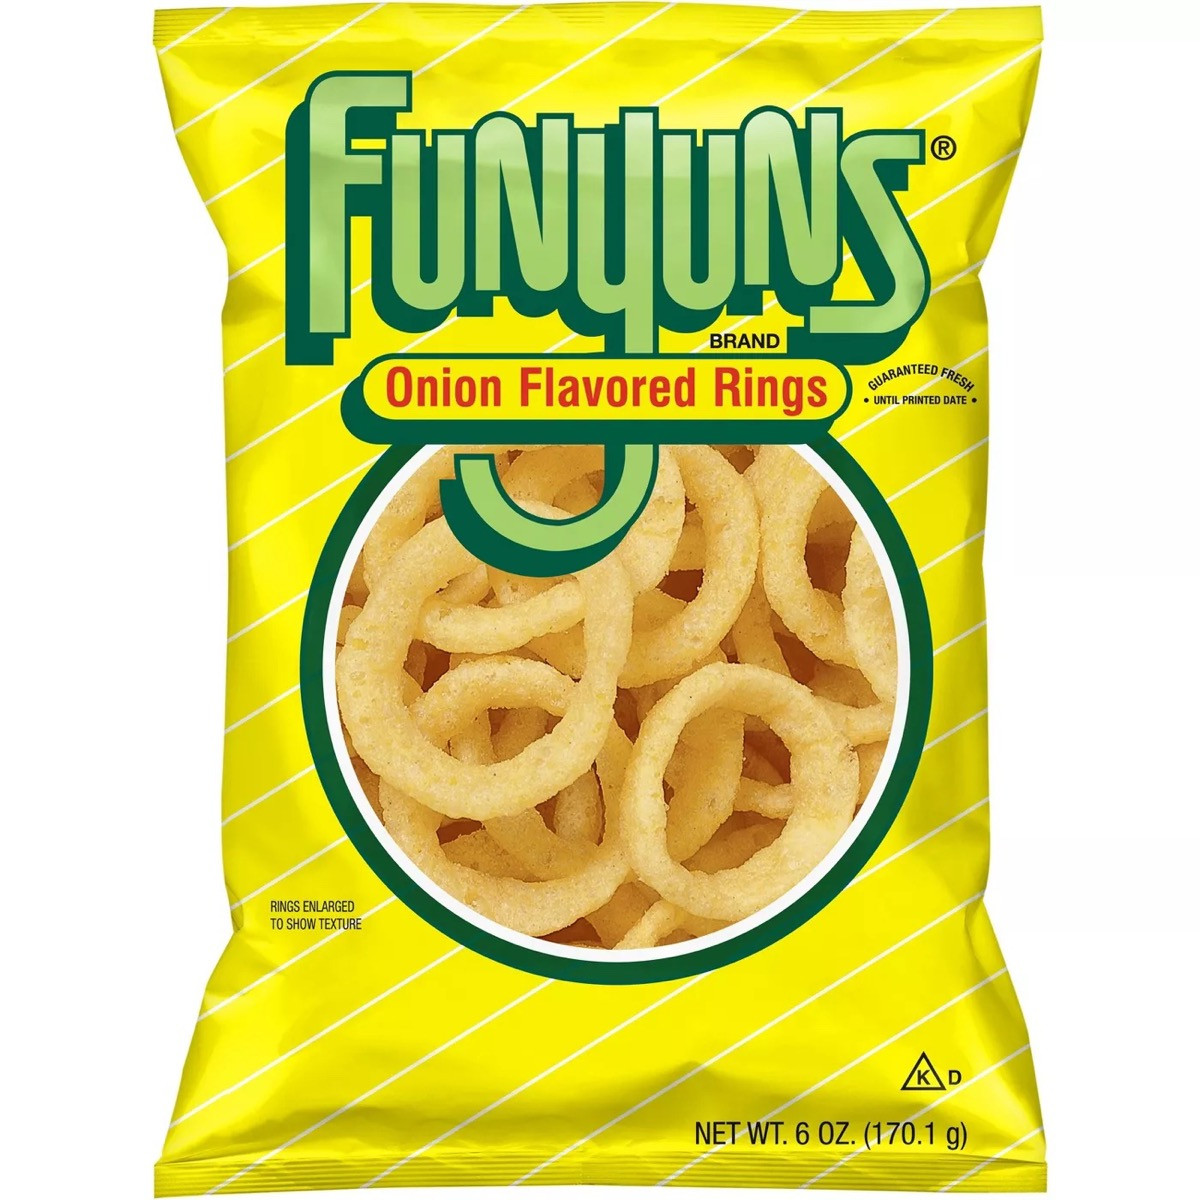 yellow bag of funyuns onion flavored rings on white background